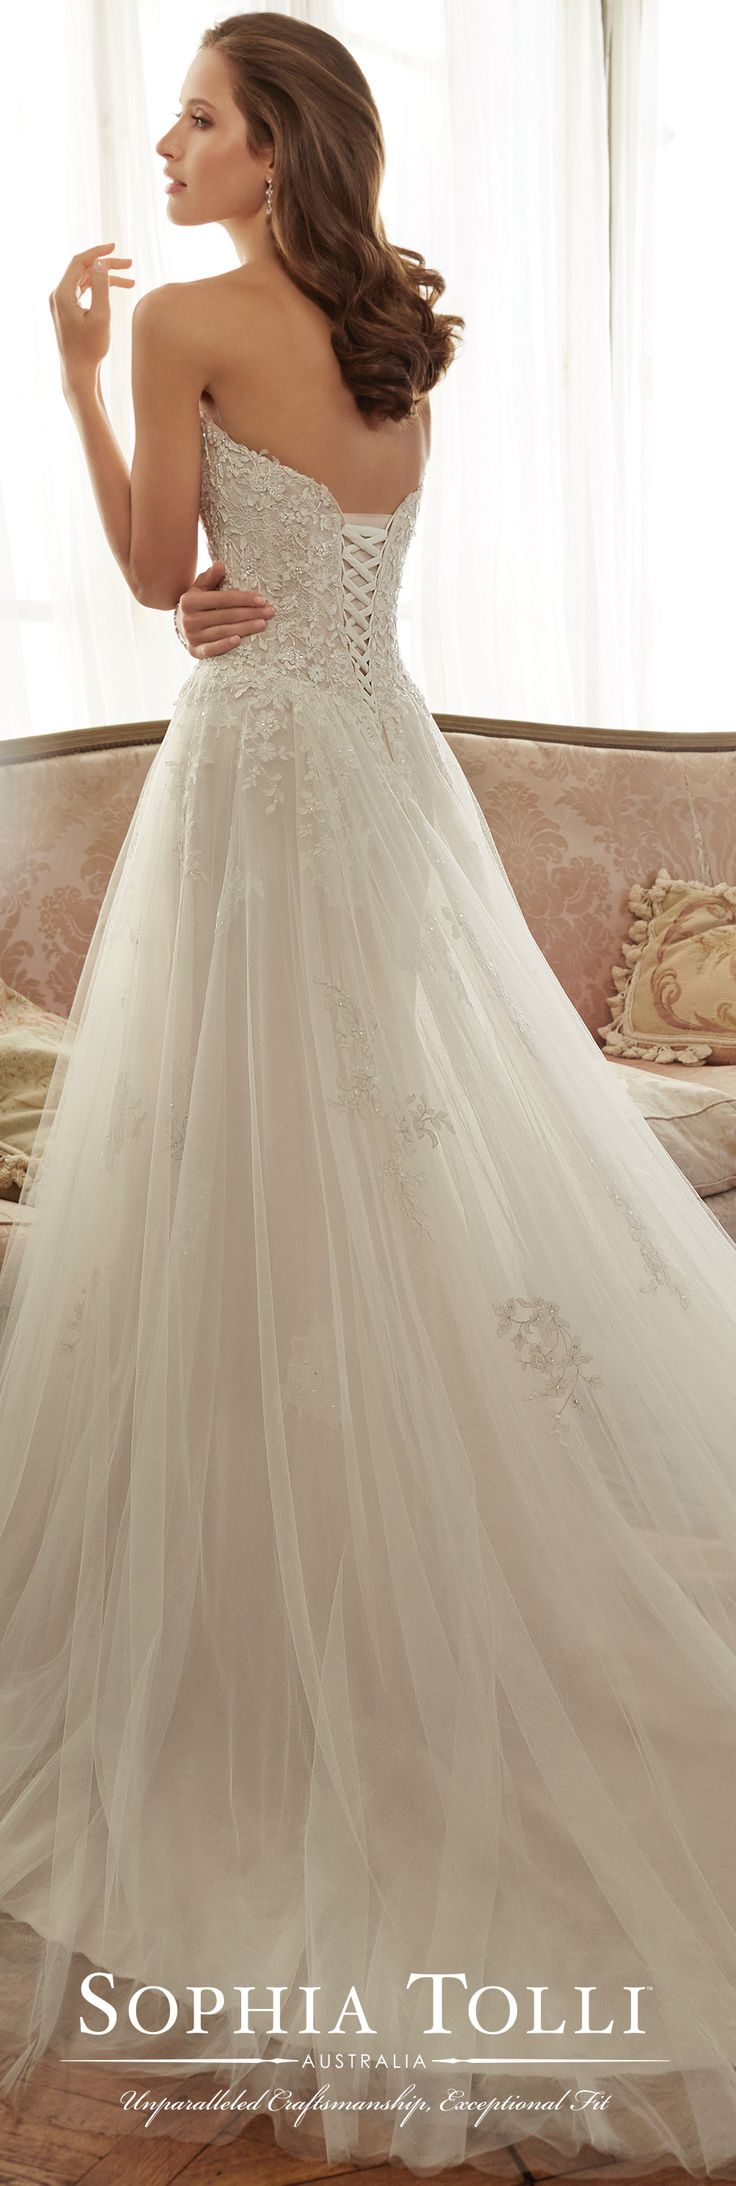 Sophia Tolli Spring 2017 Wedding Gown Collection - Style No. Y11706 Harriet - strapless tulle wedding dress with hand-beaded lace appliqued bodice